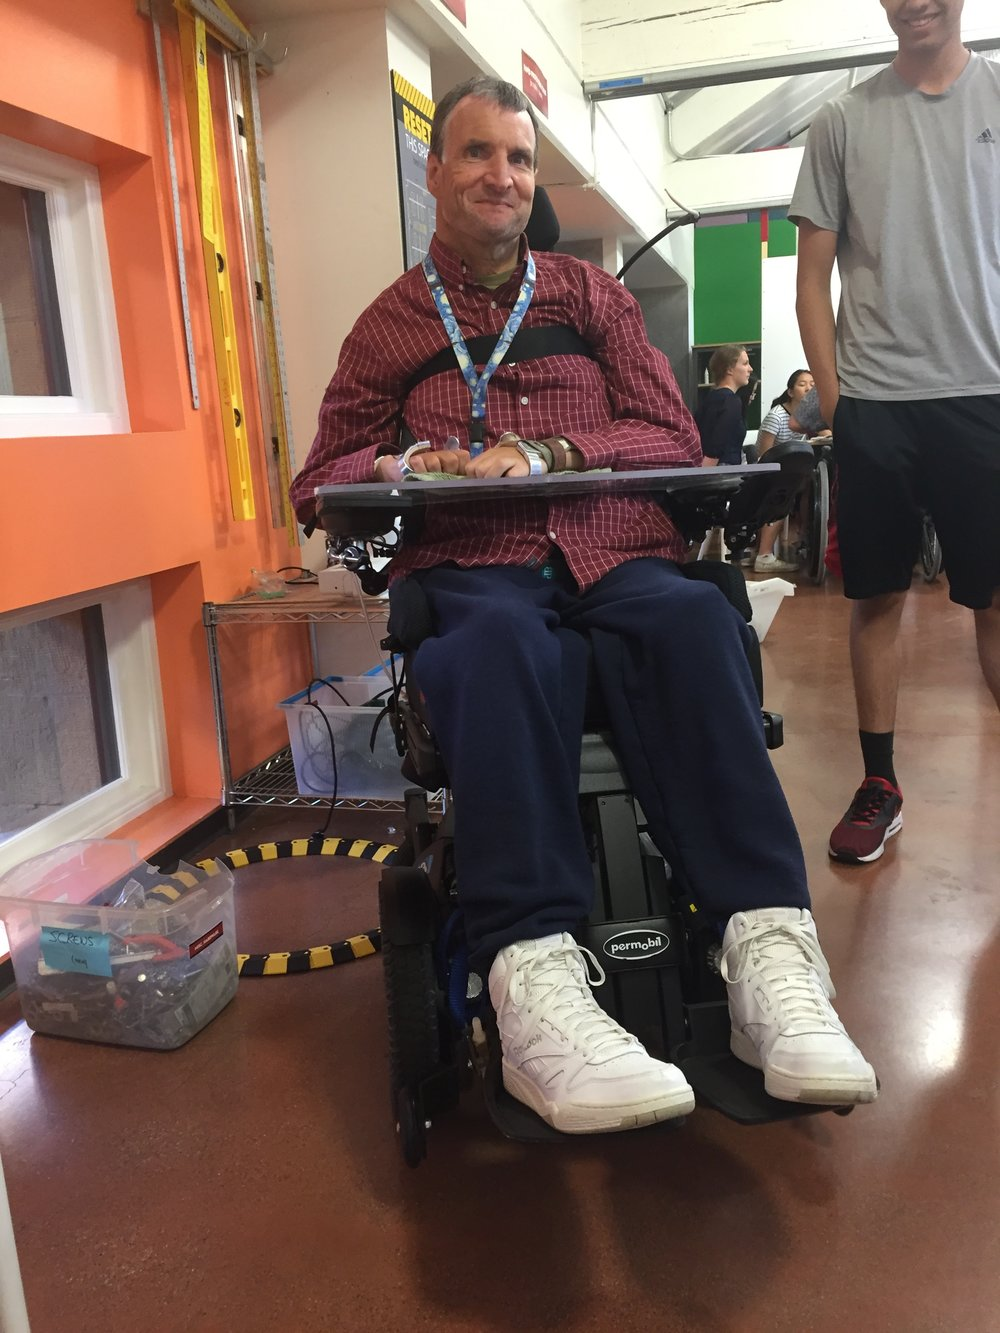 A man in wheelchair smiling